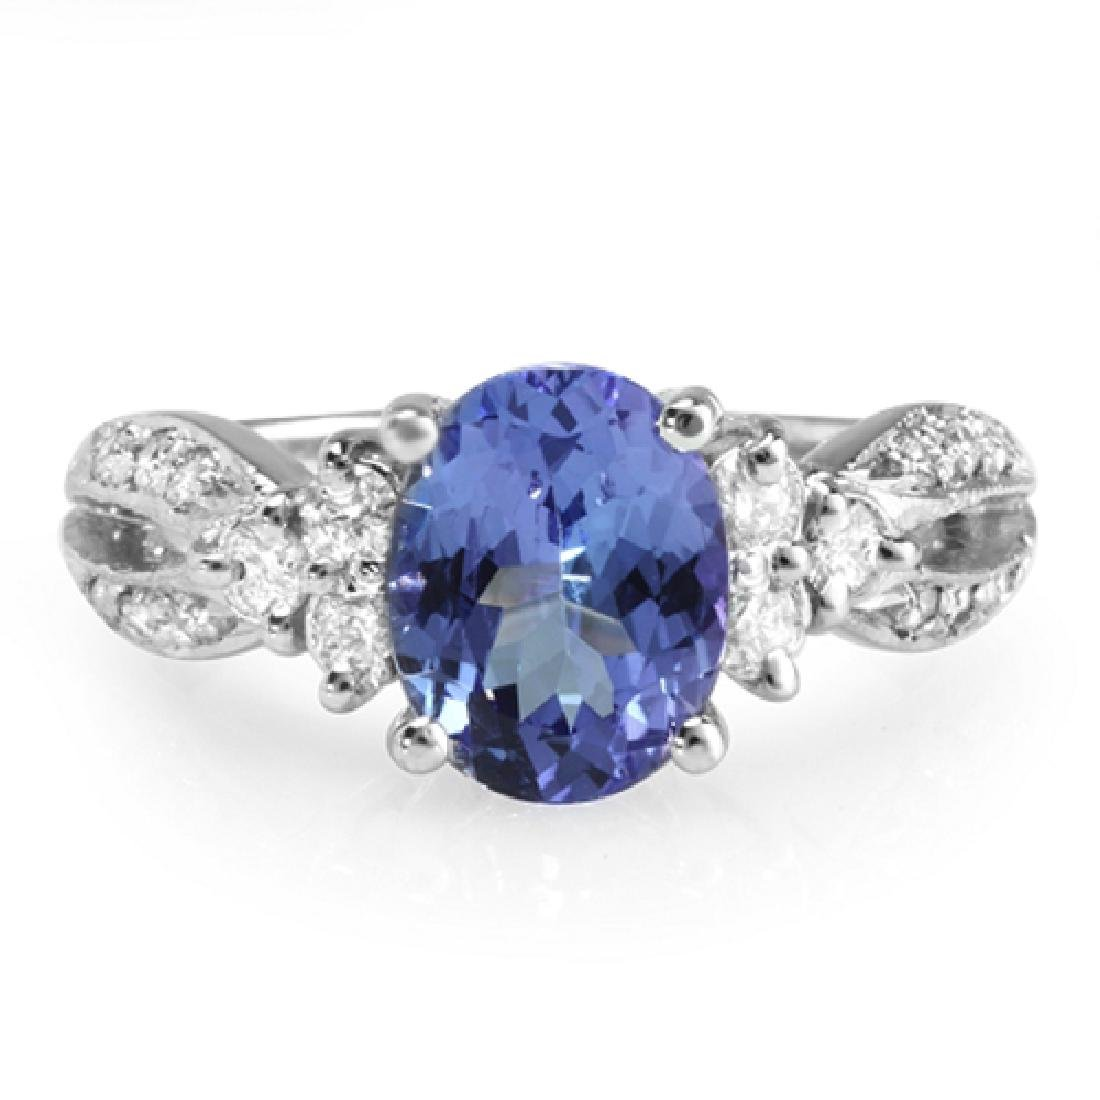 2.33 Carat Natural Tanzanite 18K Solid White Gold